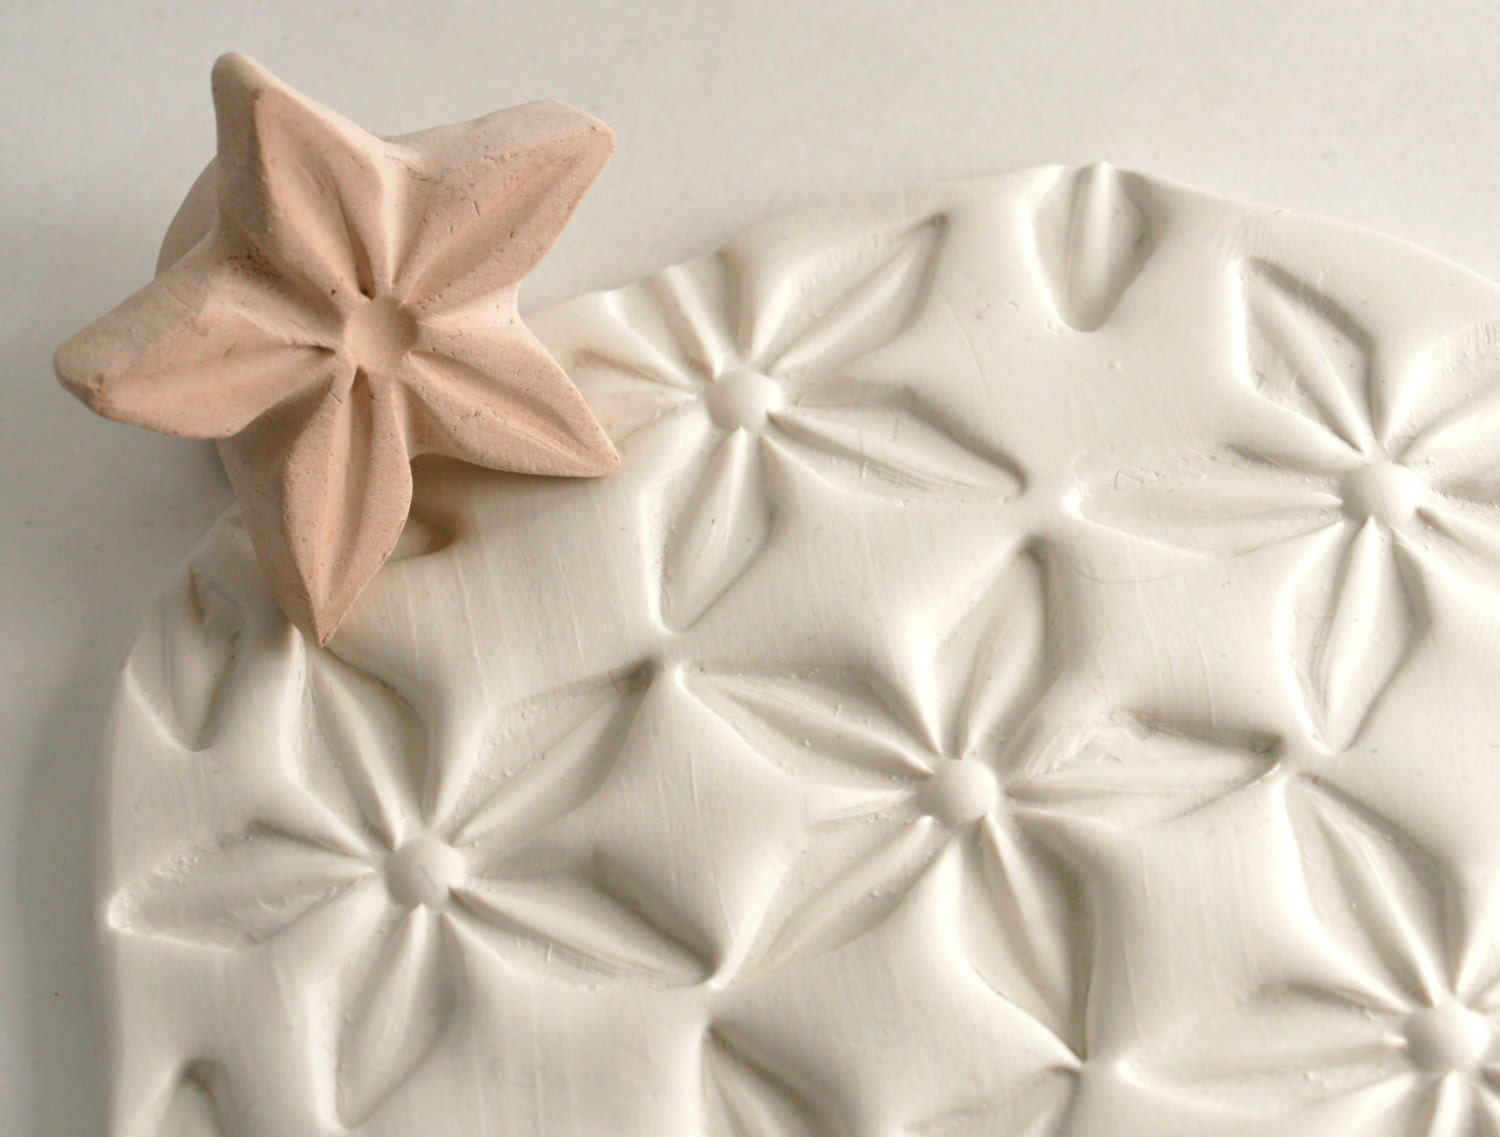 Clay Stamp Star Flower Jasmine Shape Pattern Texture Tool